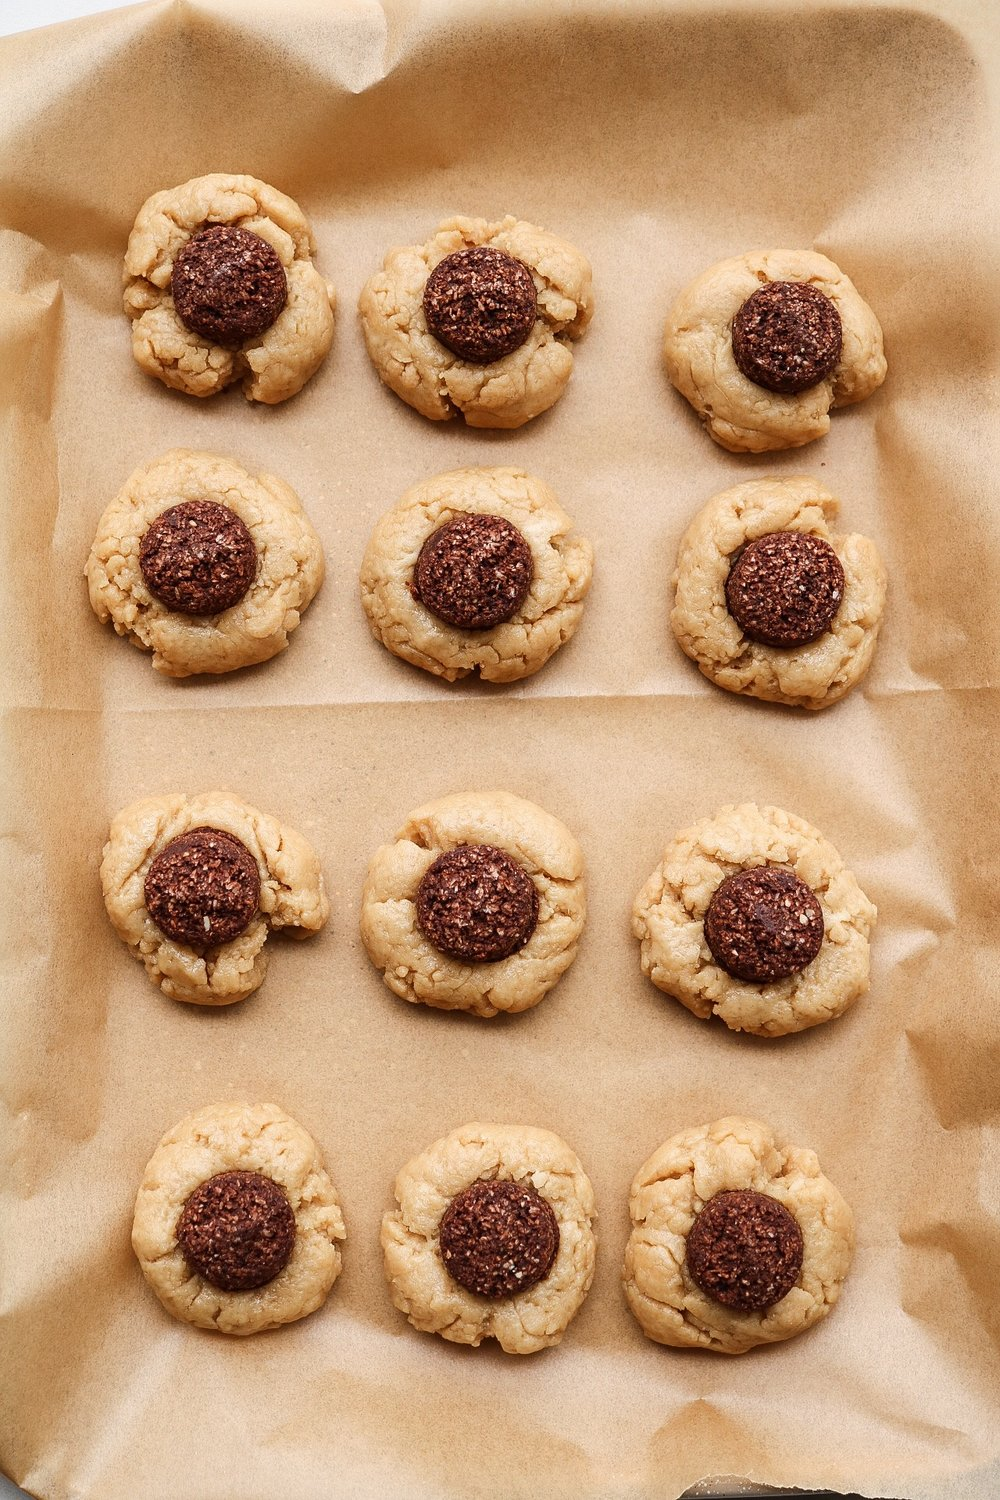 Place a coco-roon into the center of each cookie - then, just bake!